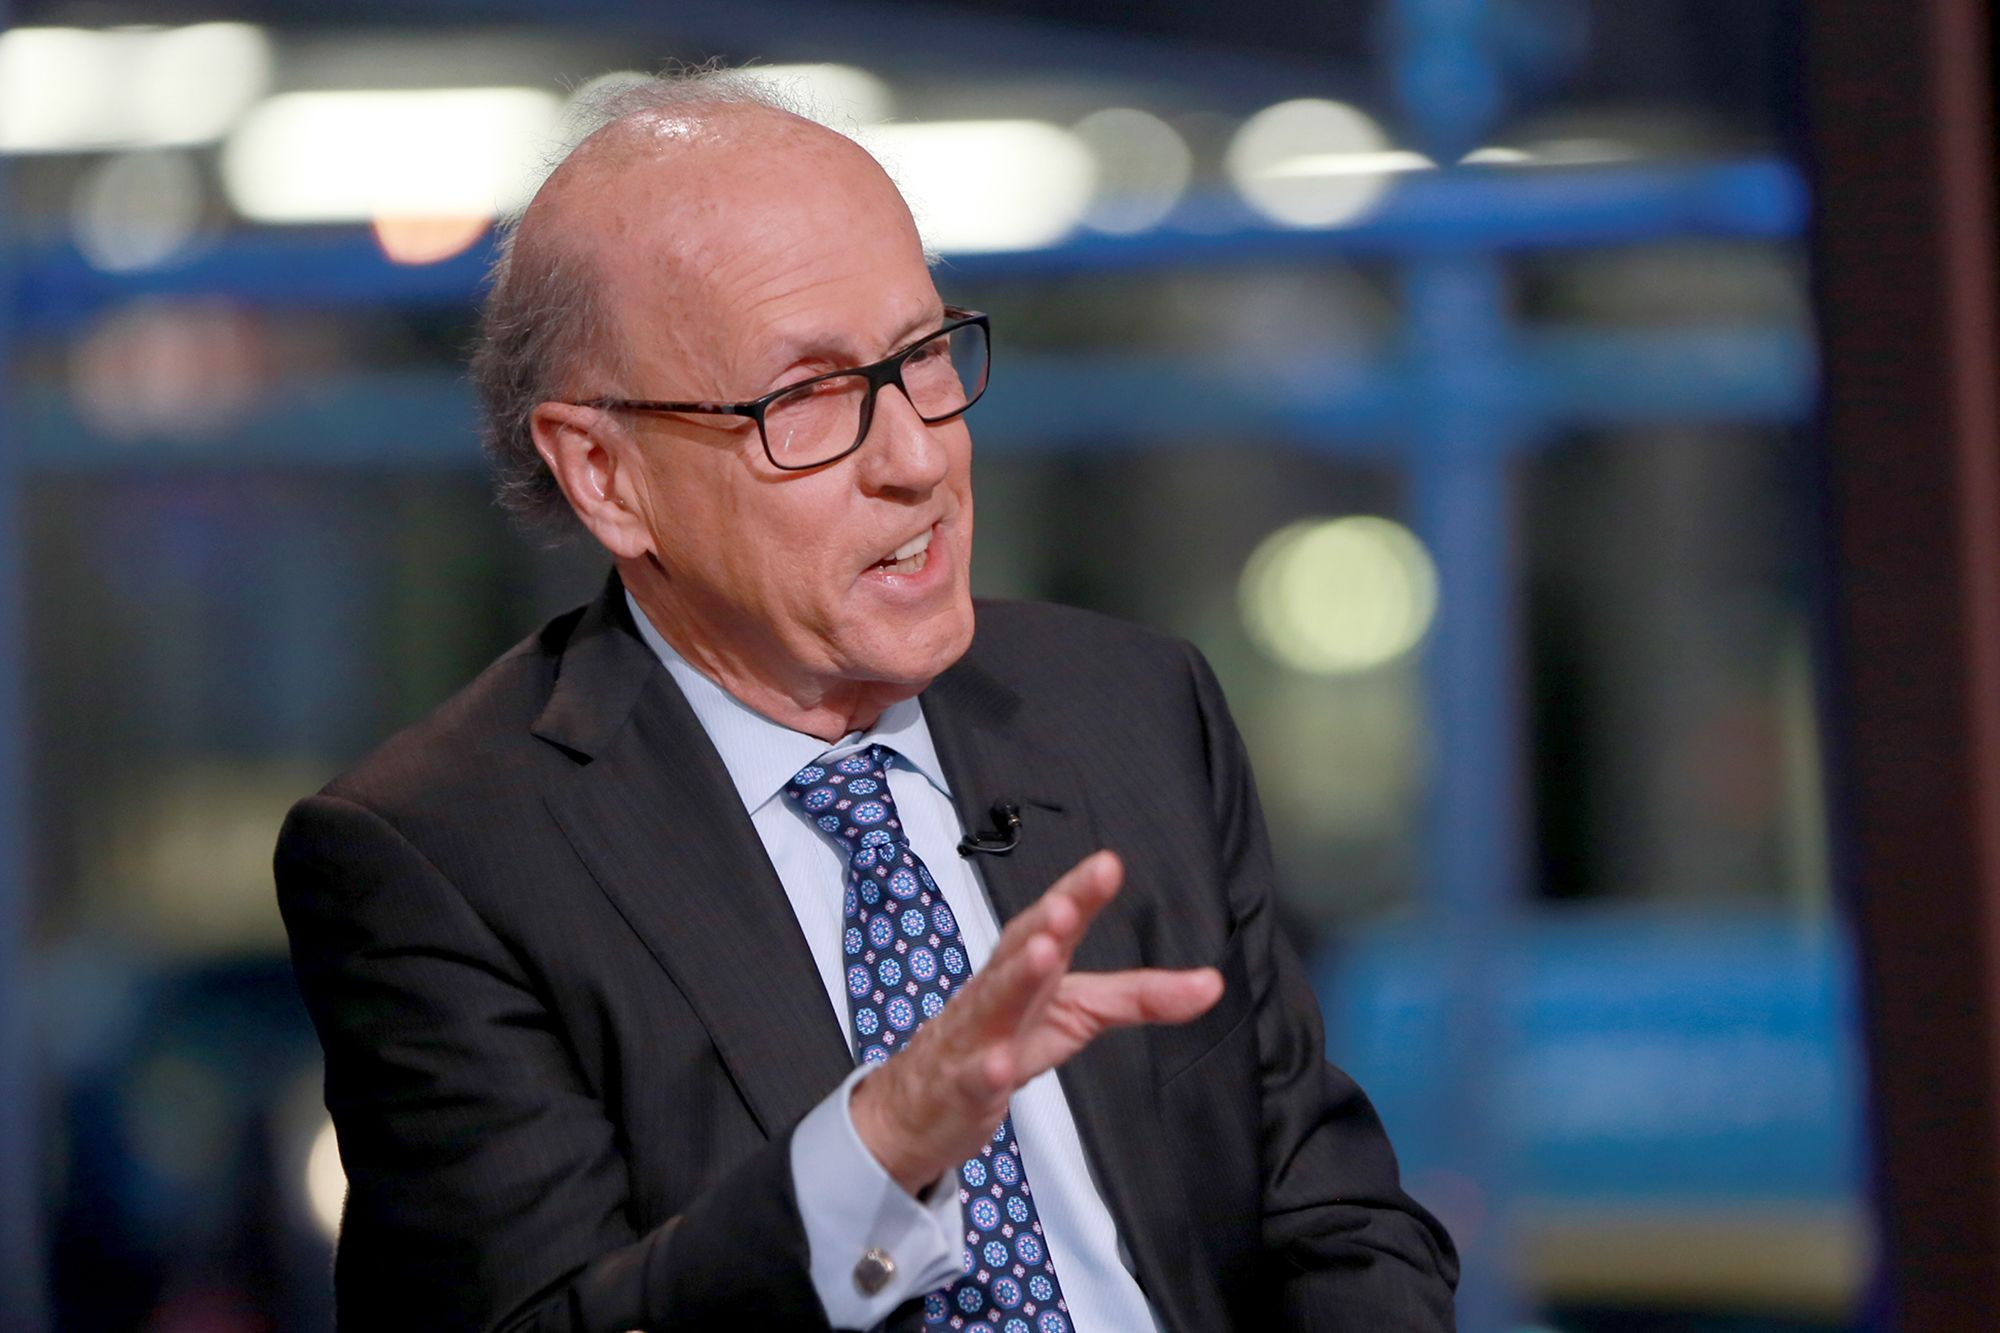 Trade war fallout is not crushing China's economy: Stephen Roach